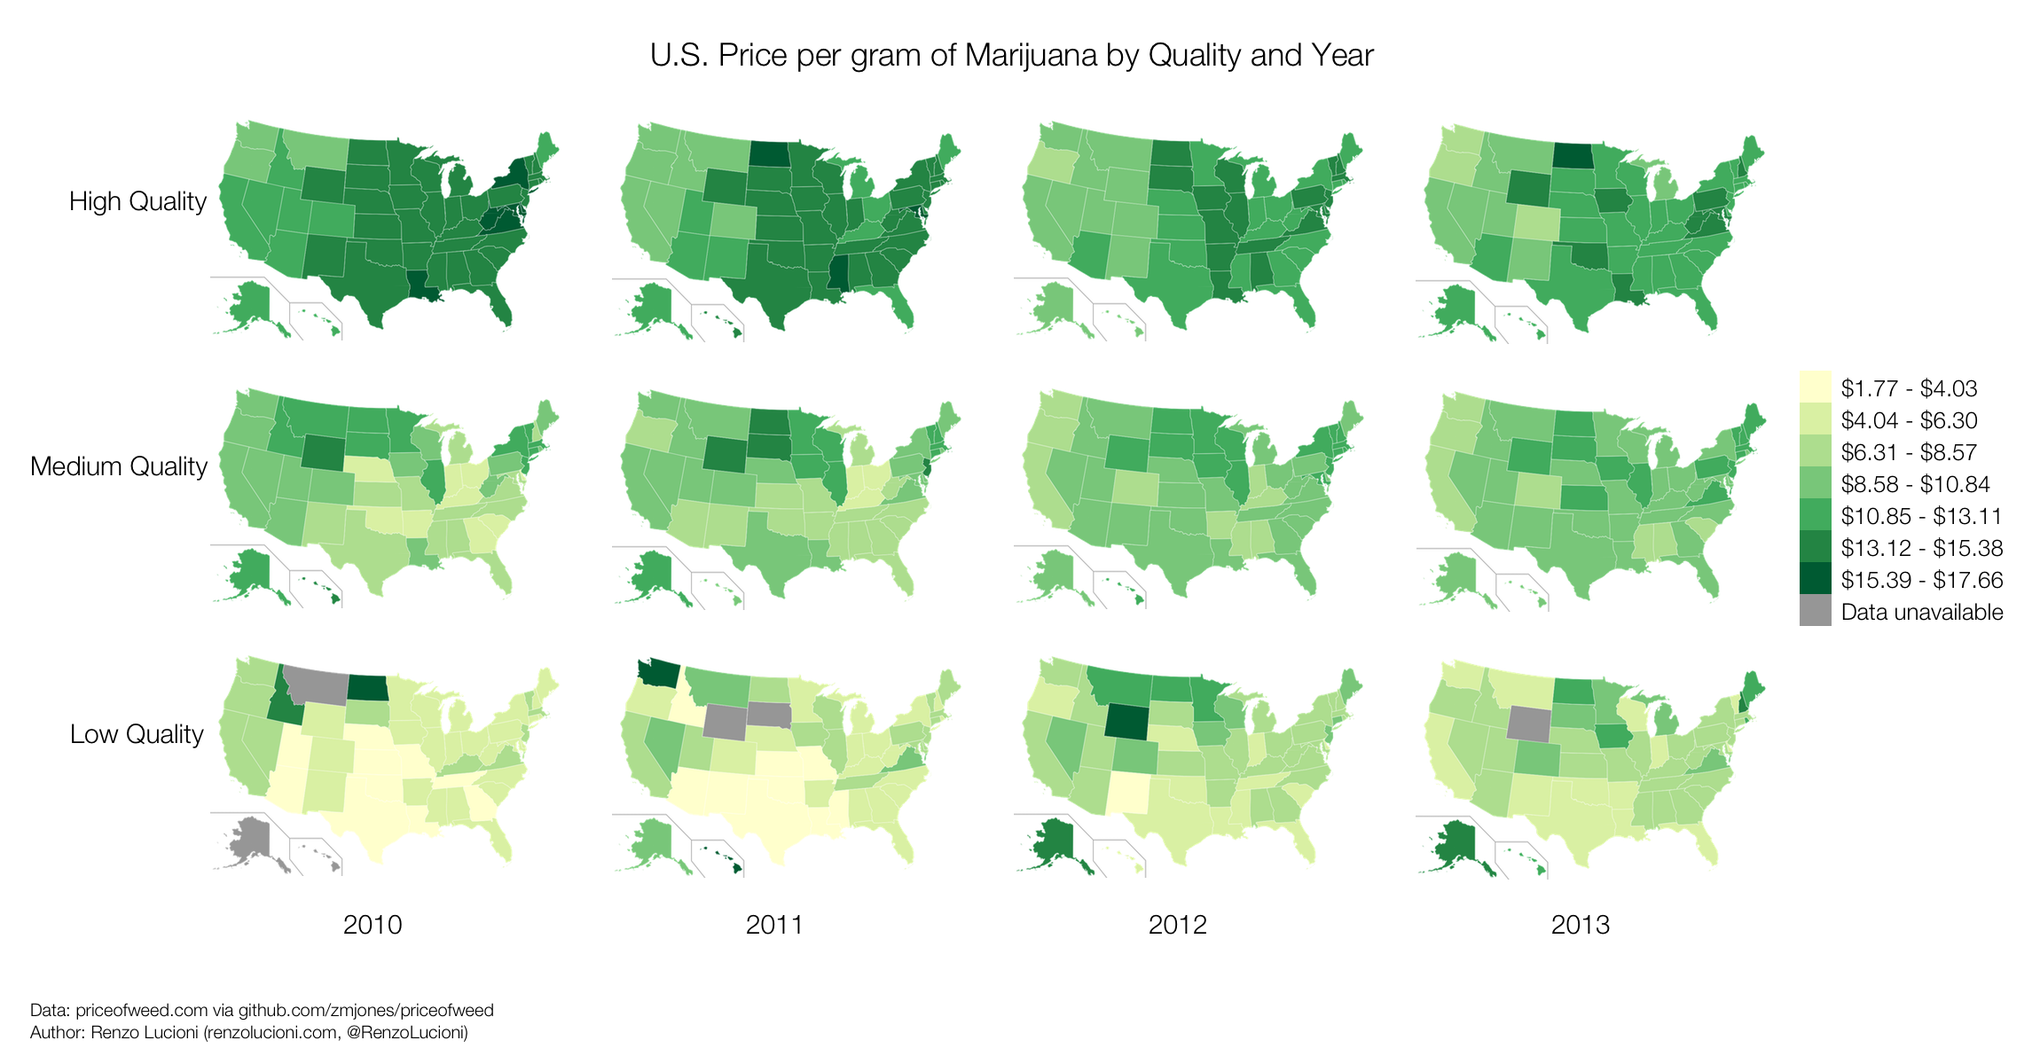 After The 1980s The Price Of Marijuana Dropped And Largely Stabilized